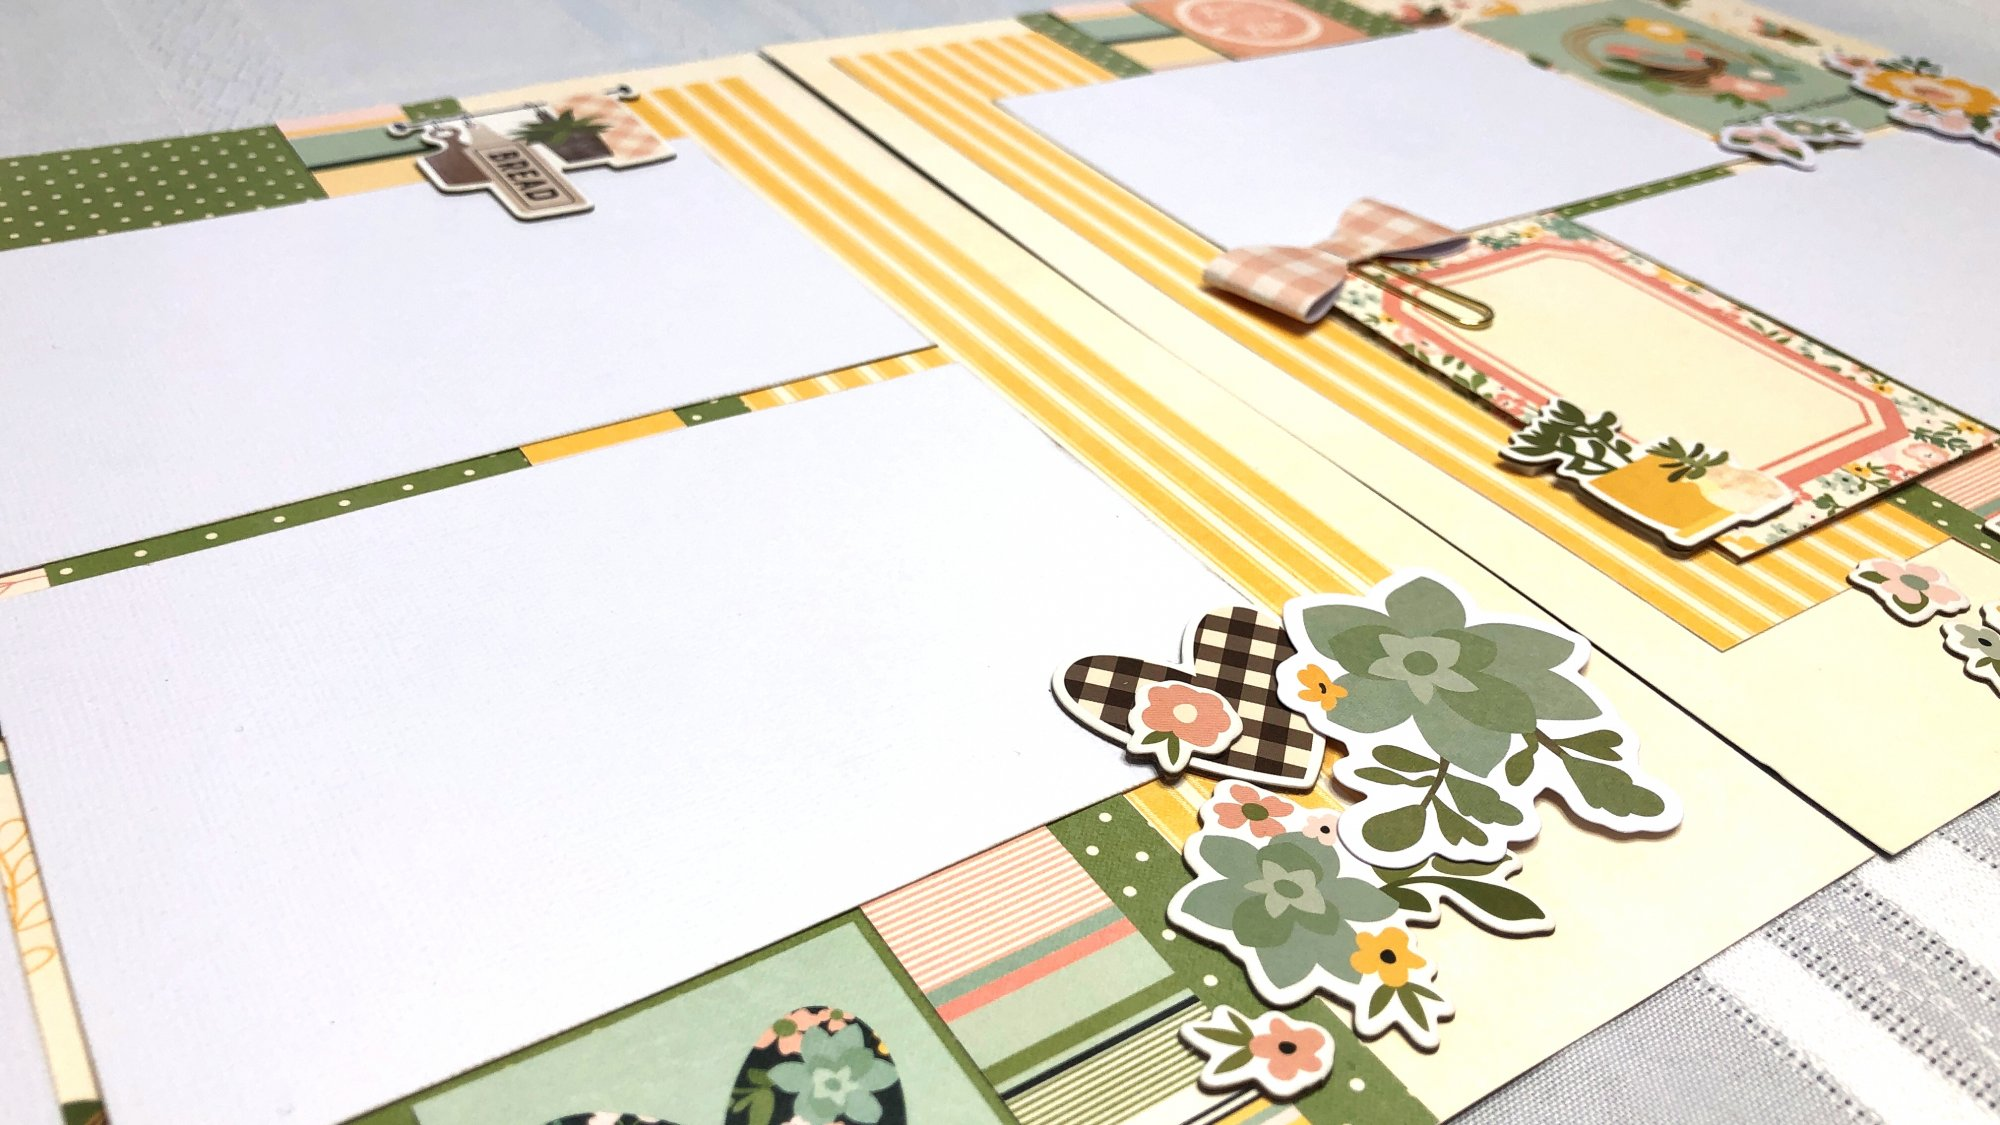 Simple Stories: Spring Farmhouse Layouts Class Kit